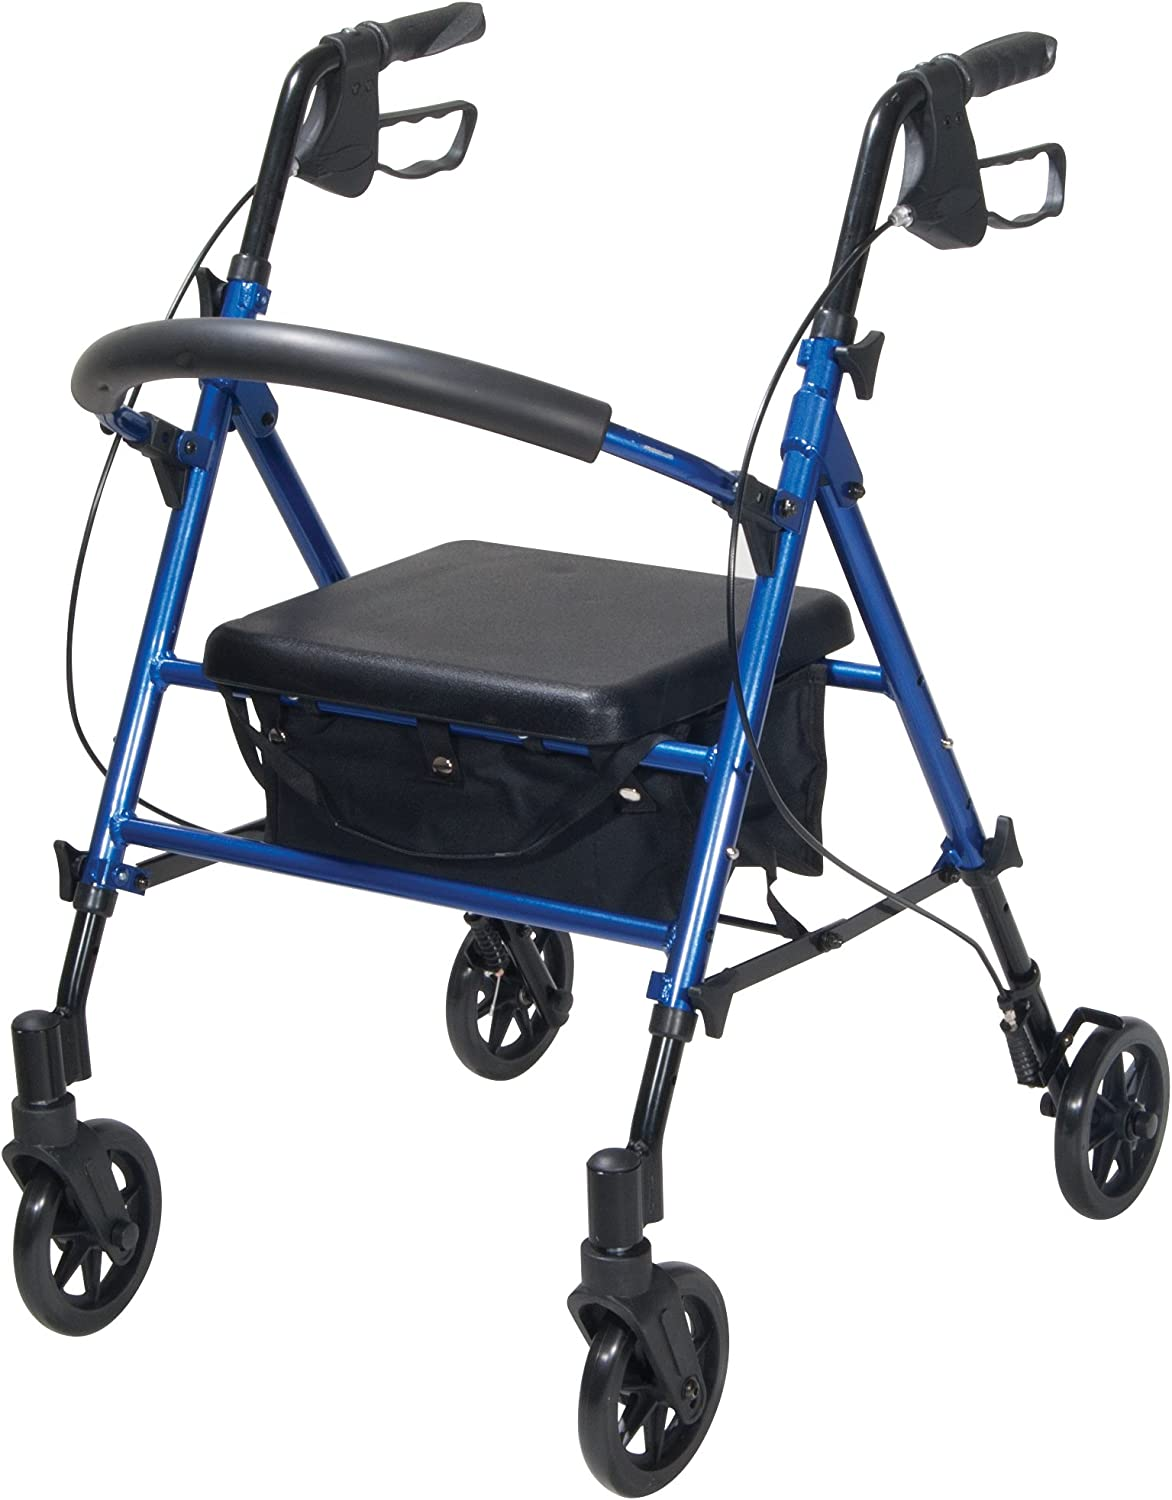 Drive Medical Adjustable Height Rollator with 6 Inches Wheels, Blue 71eLPZx3F9L